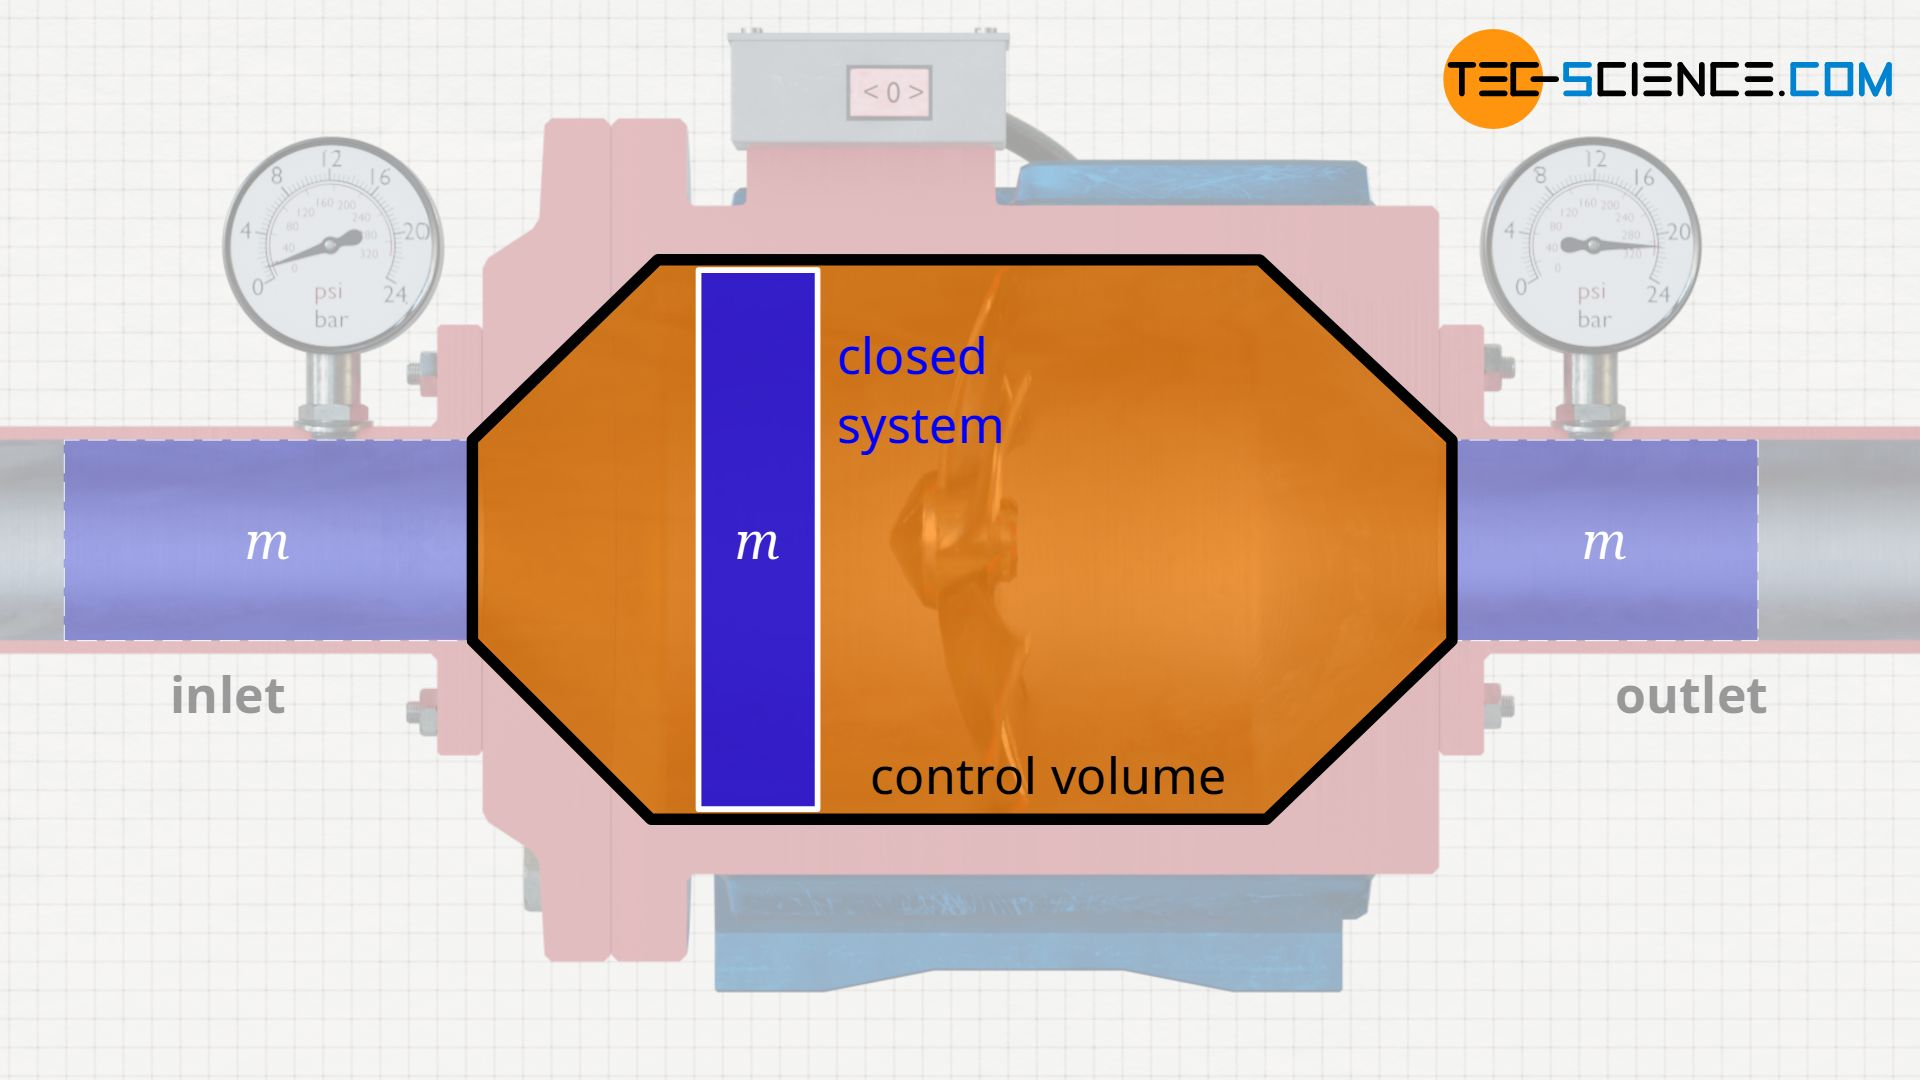 Closed system moving through the control volume